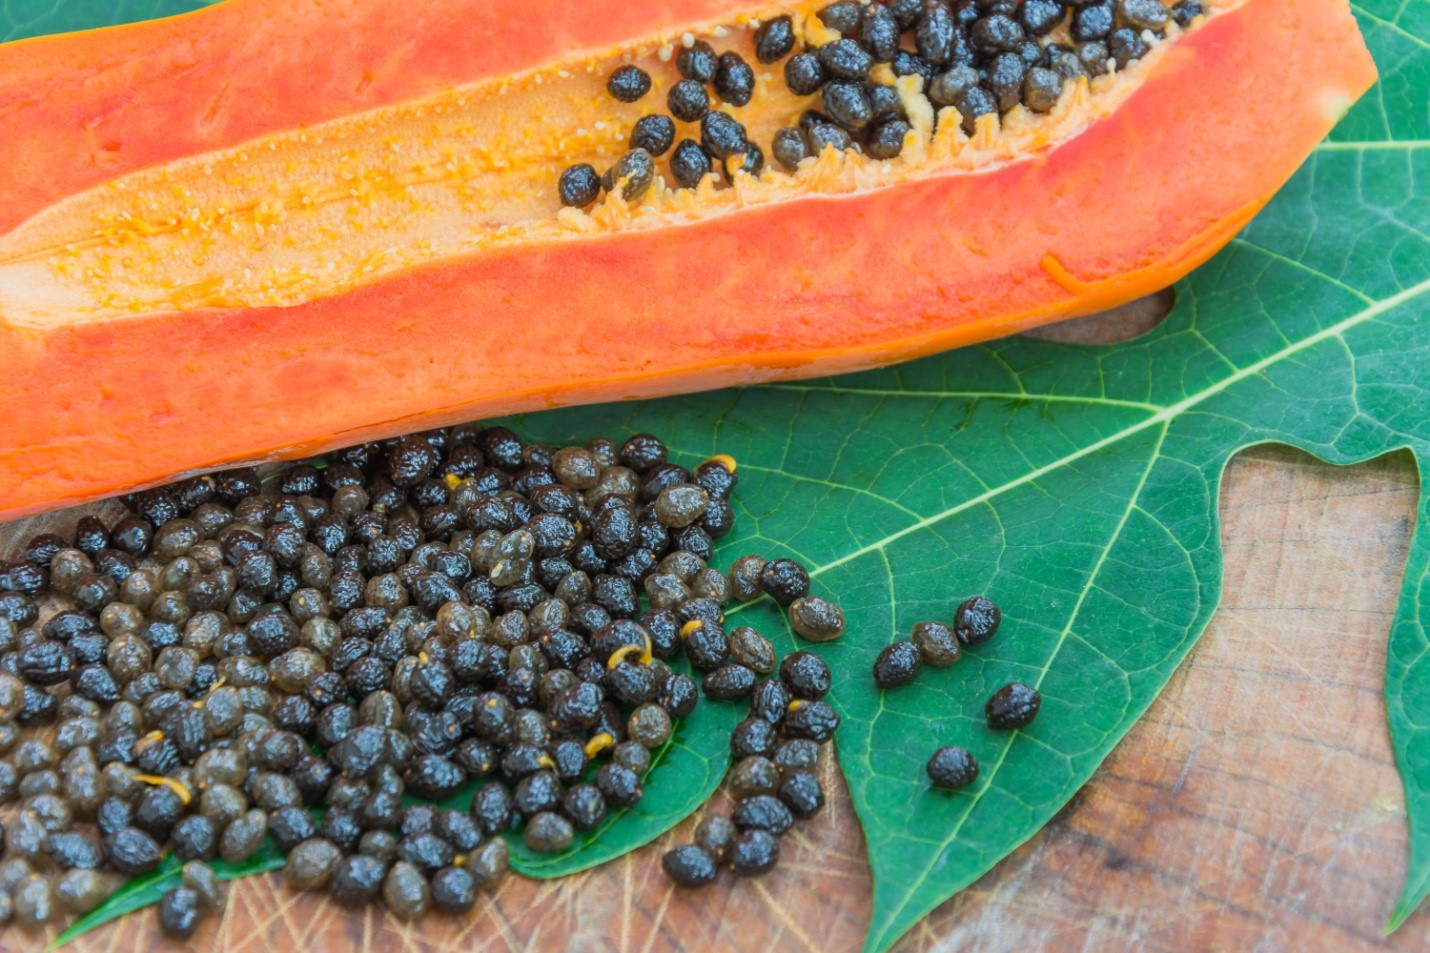 What are the benefits of papaya seeds?